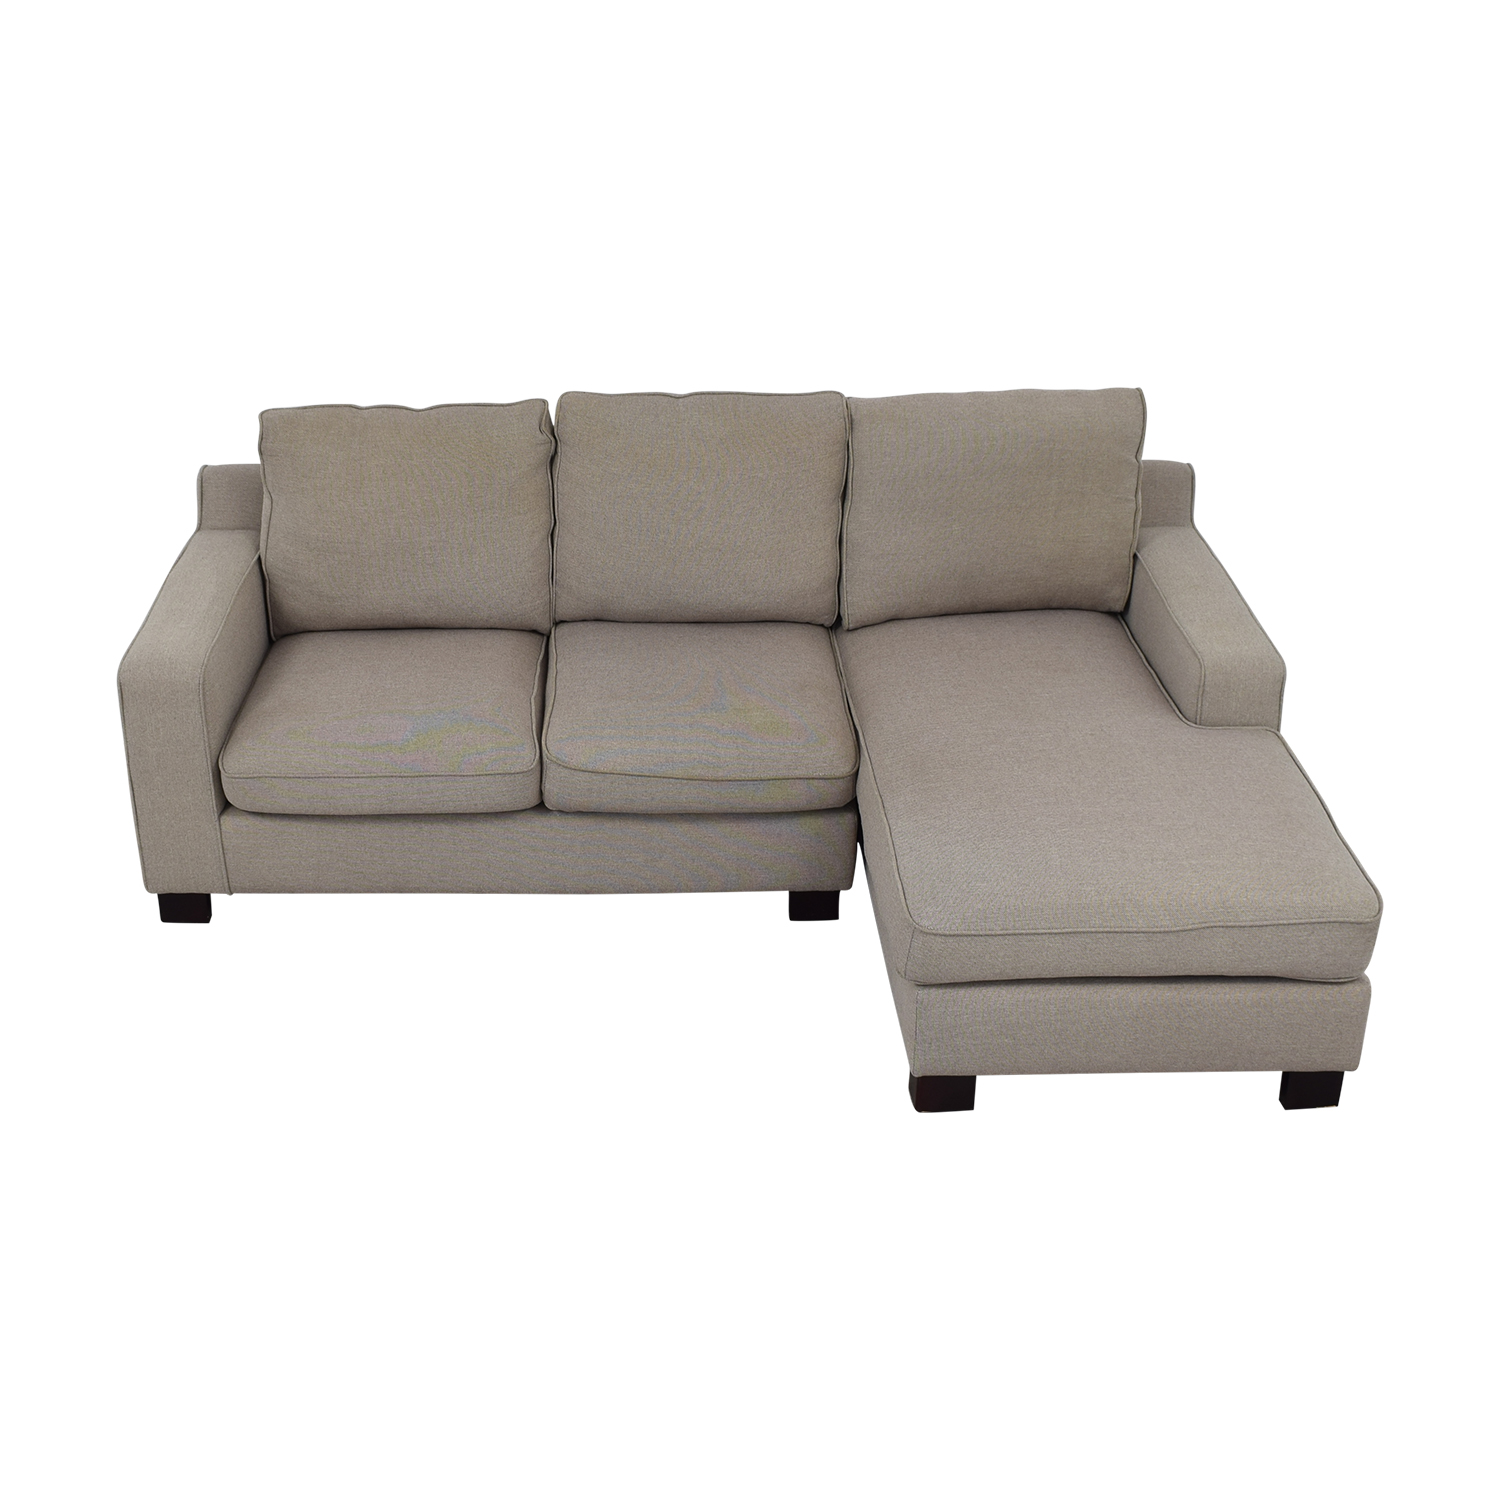 Abbyson Abbyson Beverly Sectional Sofa on sale